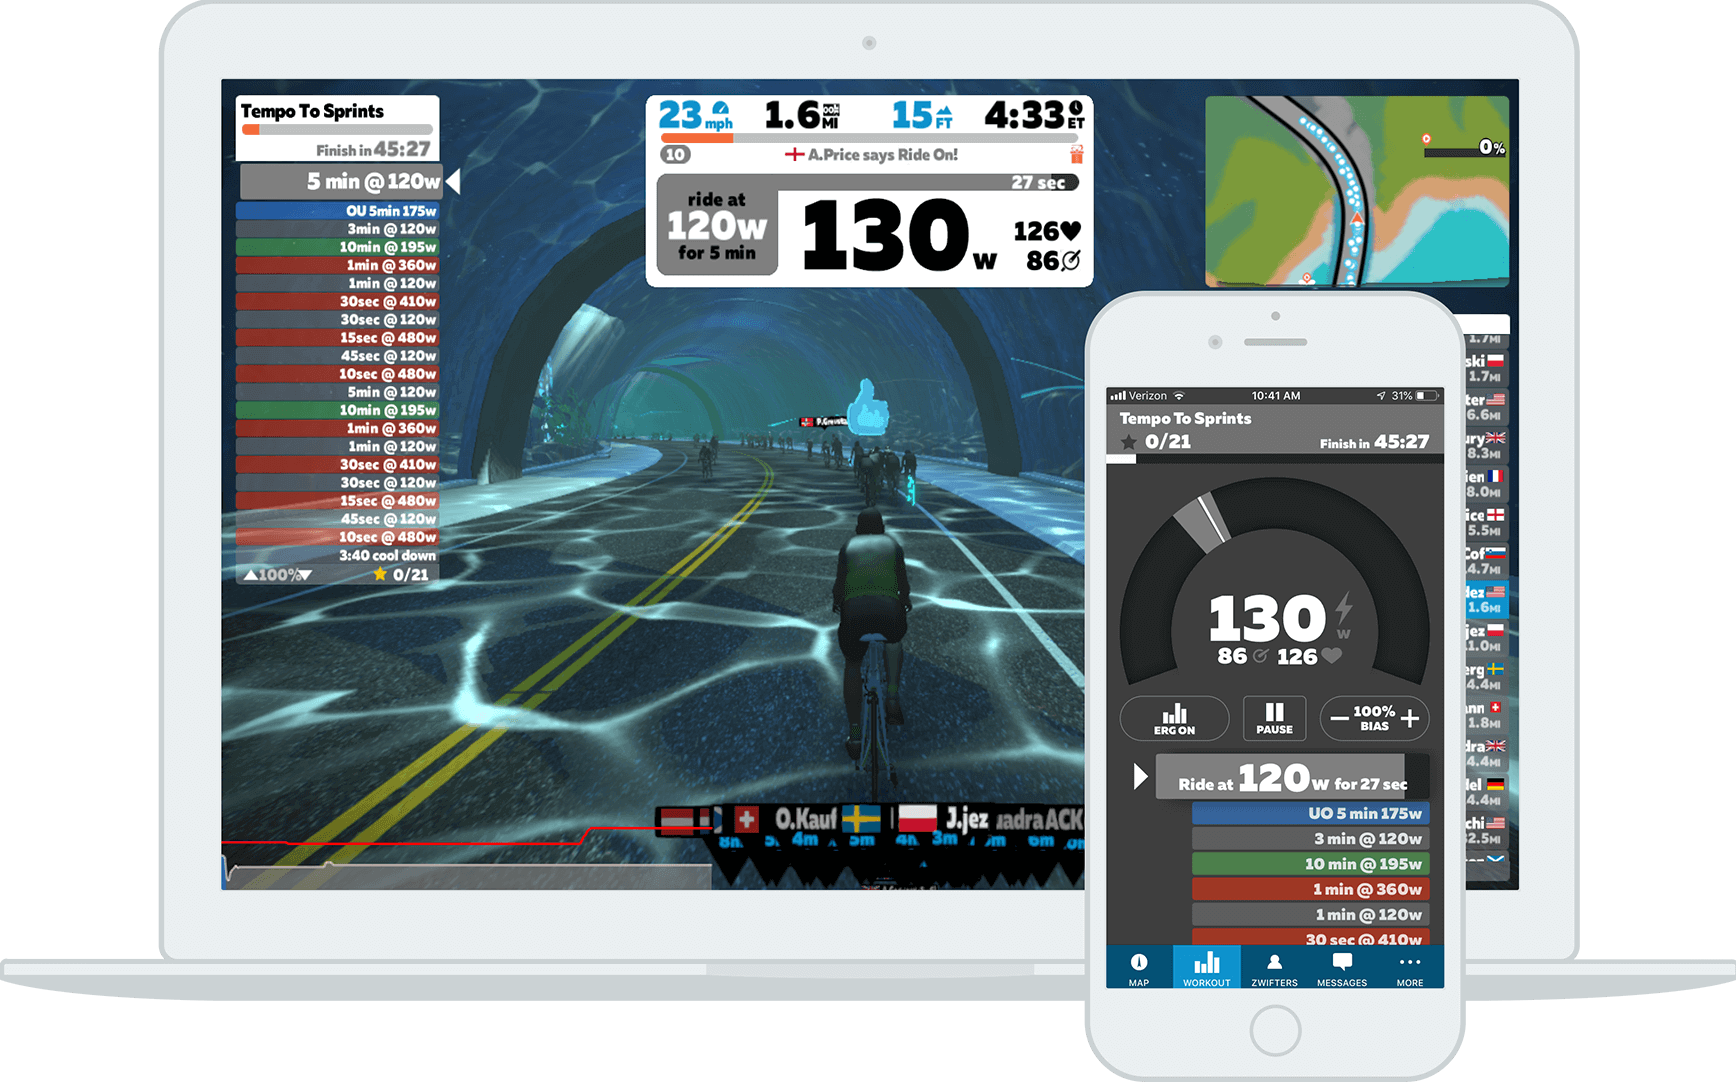 indoor cycling in casa app